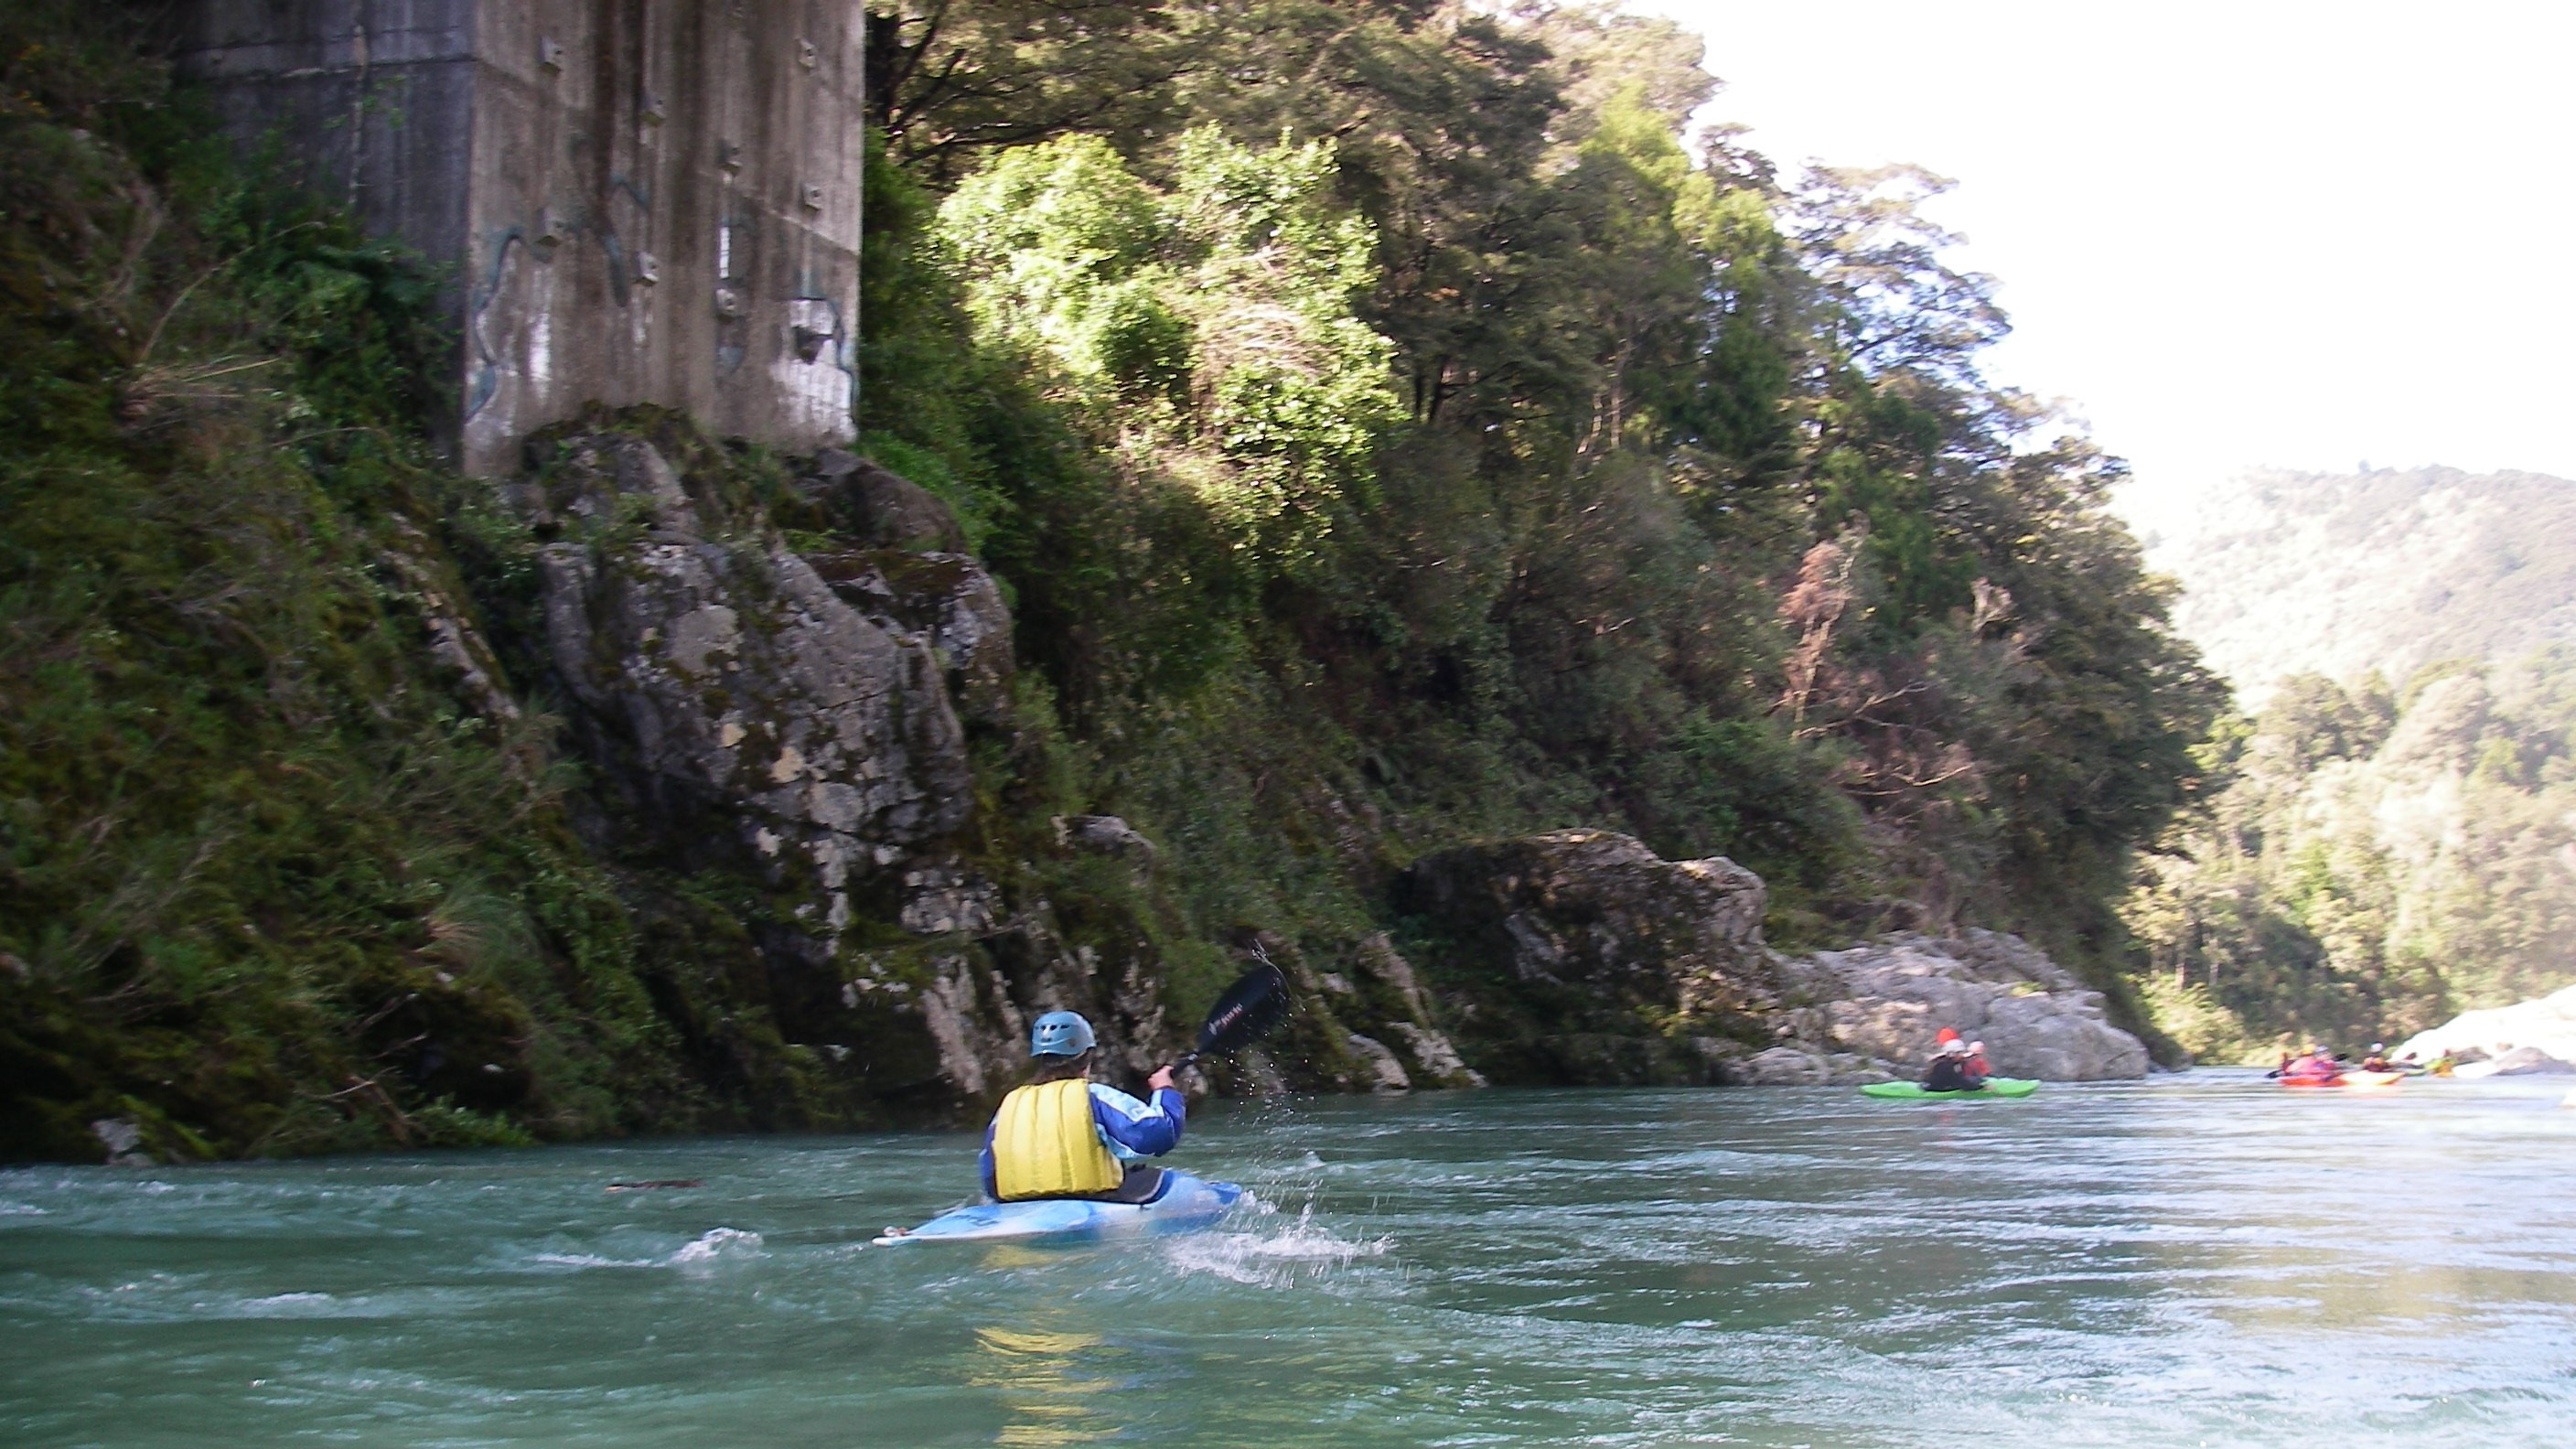 Jules Kayaking on the Pelorous River